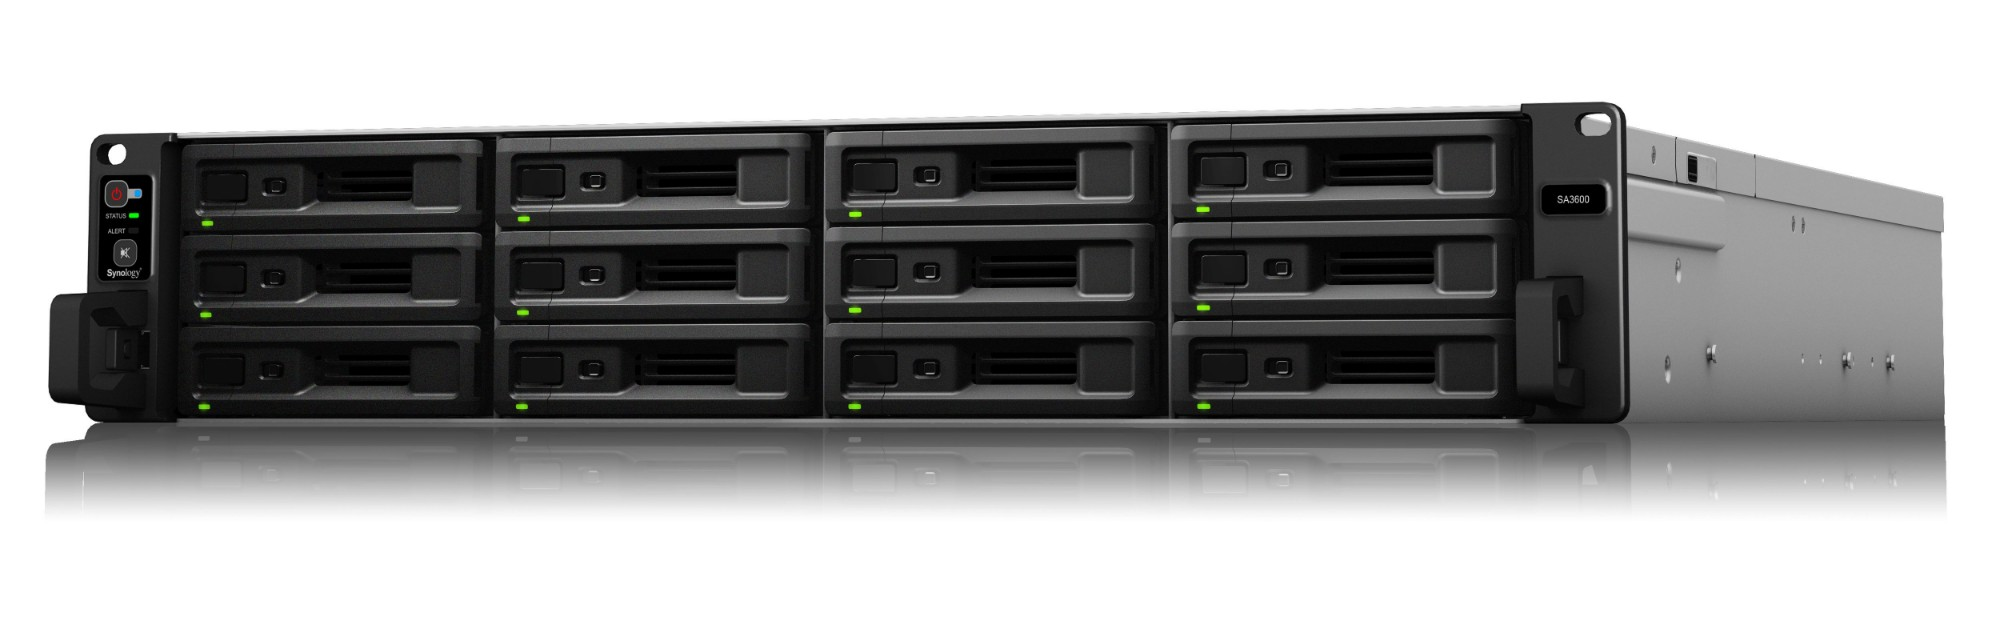 Synology RackStation SA3600 NAS/storage server Ethernet LAN Rack 2U Black,Grey